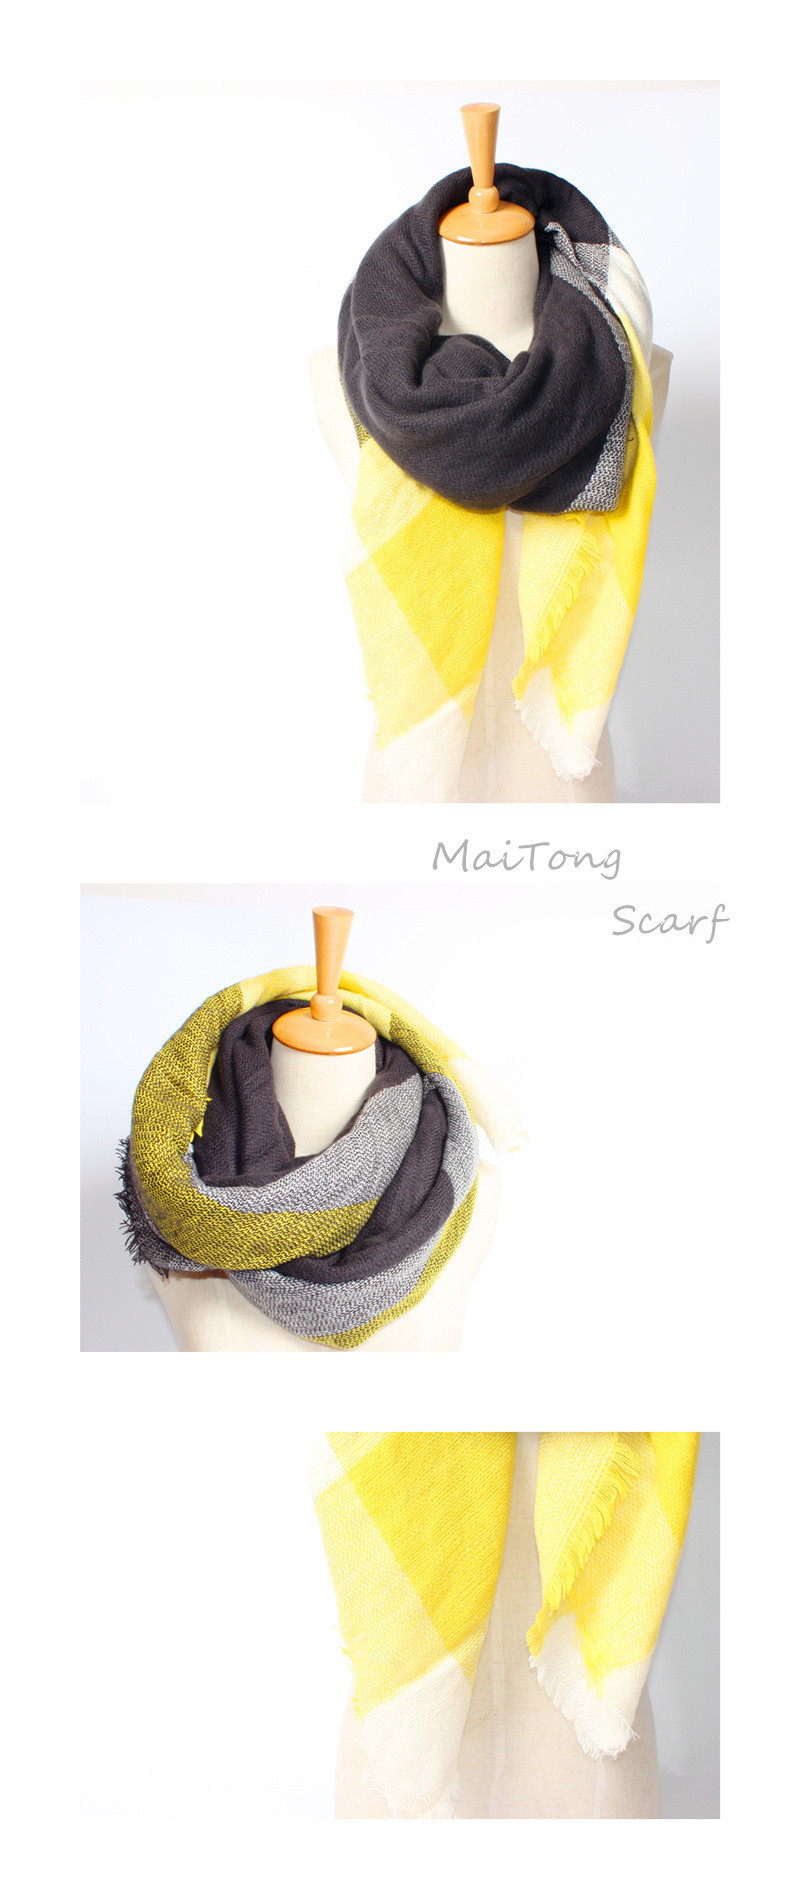 2017 New Arrival Winter Fashion Women Brand Design High Quality Warm Acrylic Mix color Yellow and black Thick Square 140cm Scarf